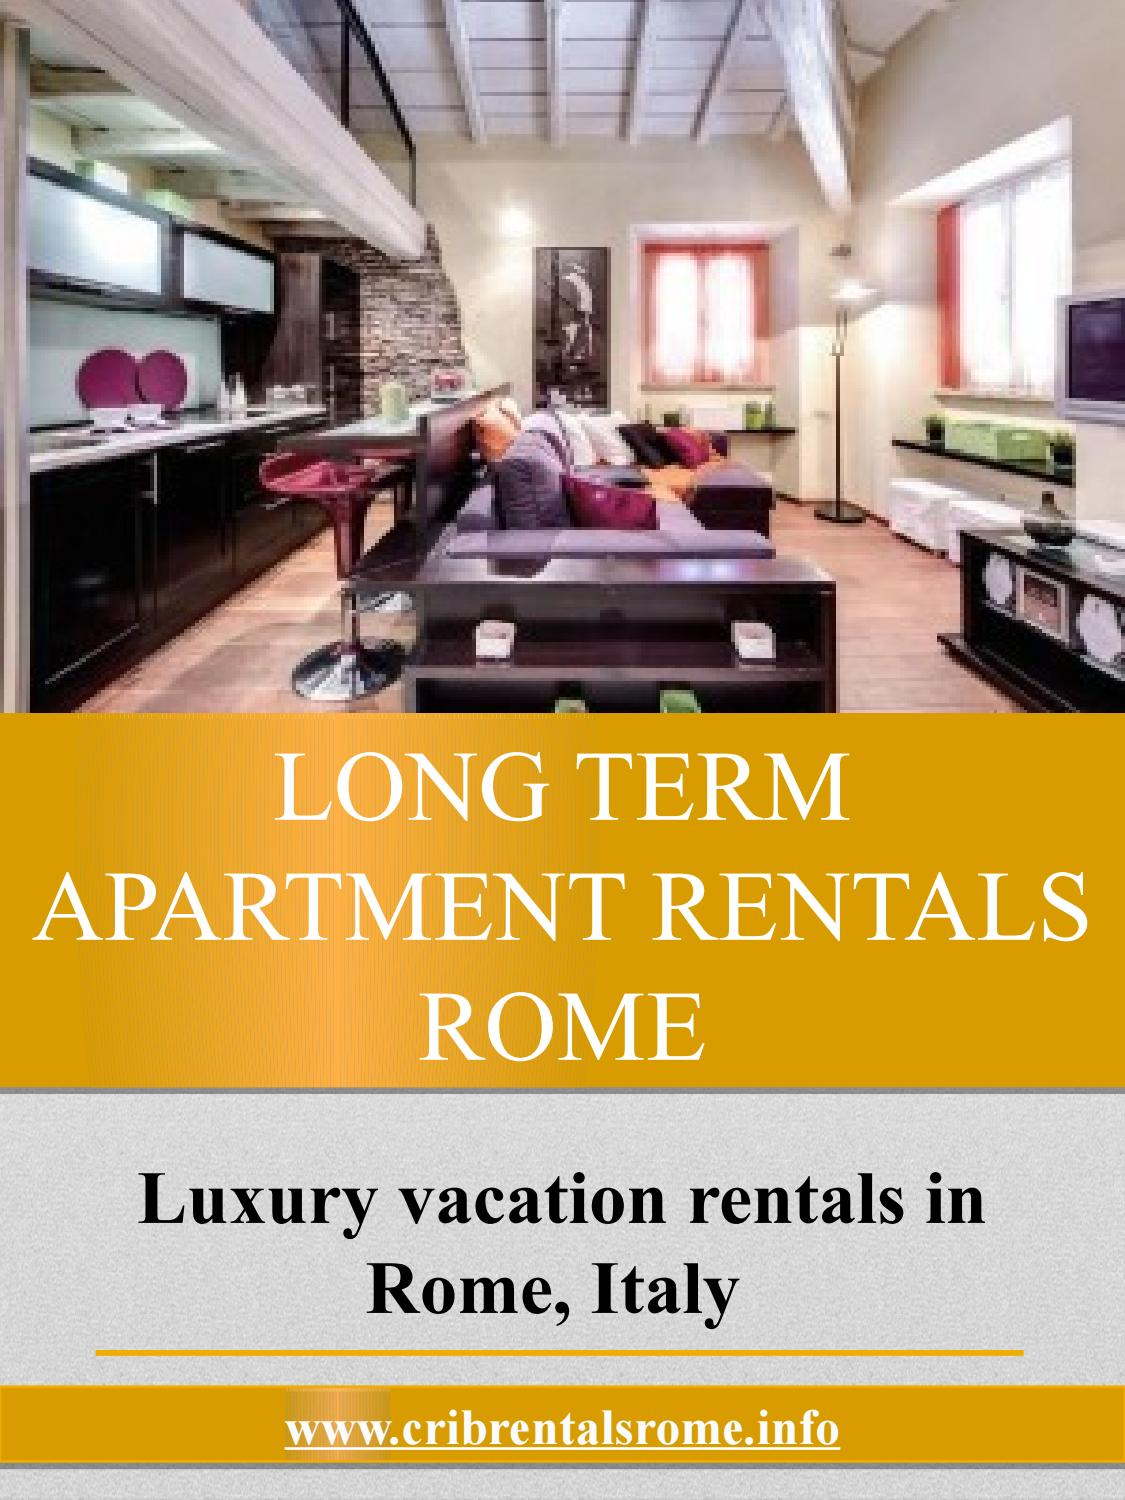 Long Term Apartment Rentals Rome By Luxury Issuu